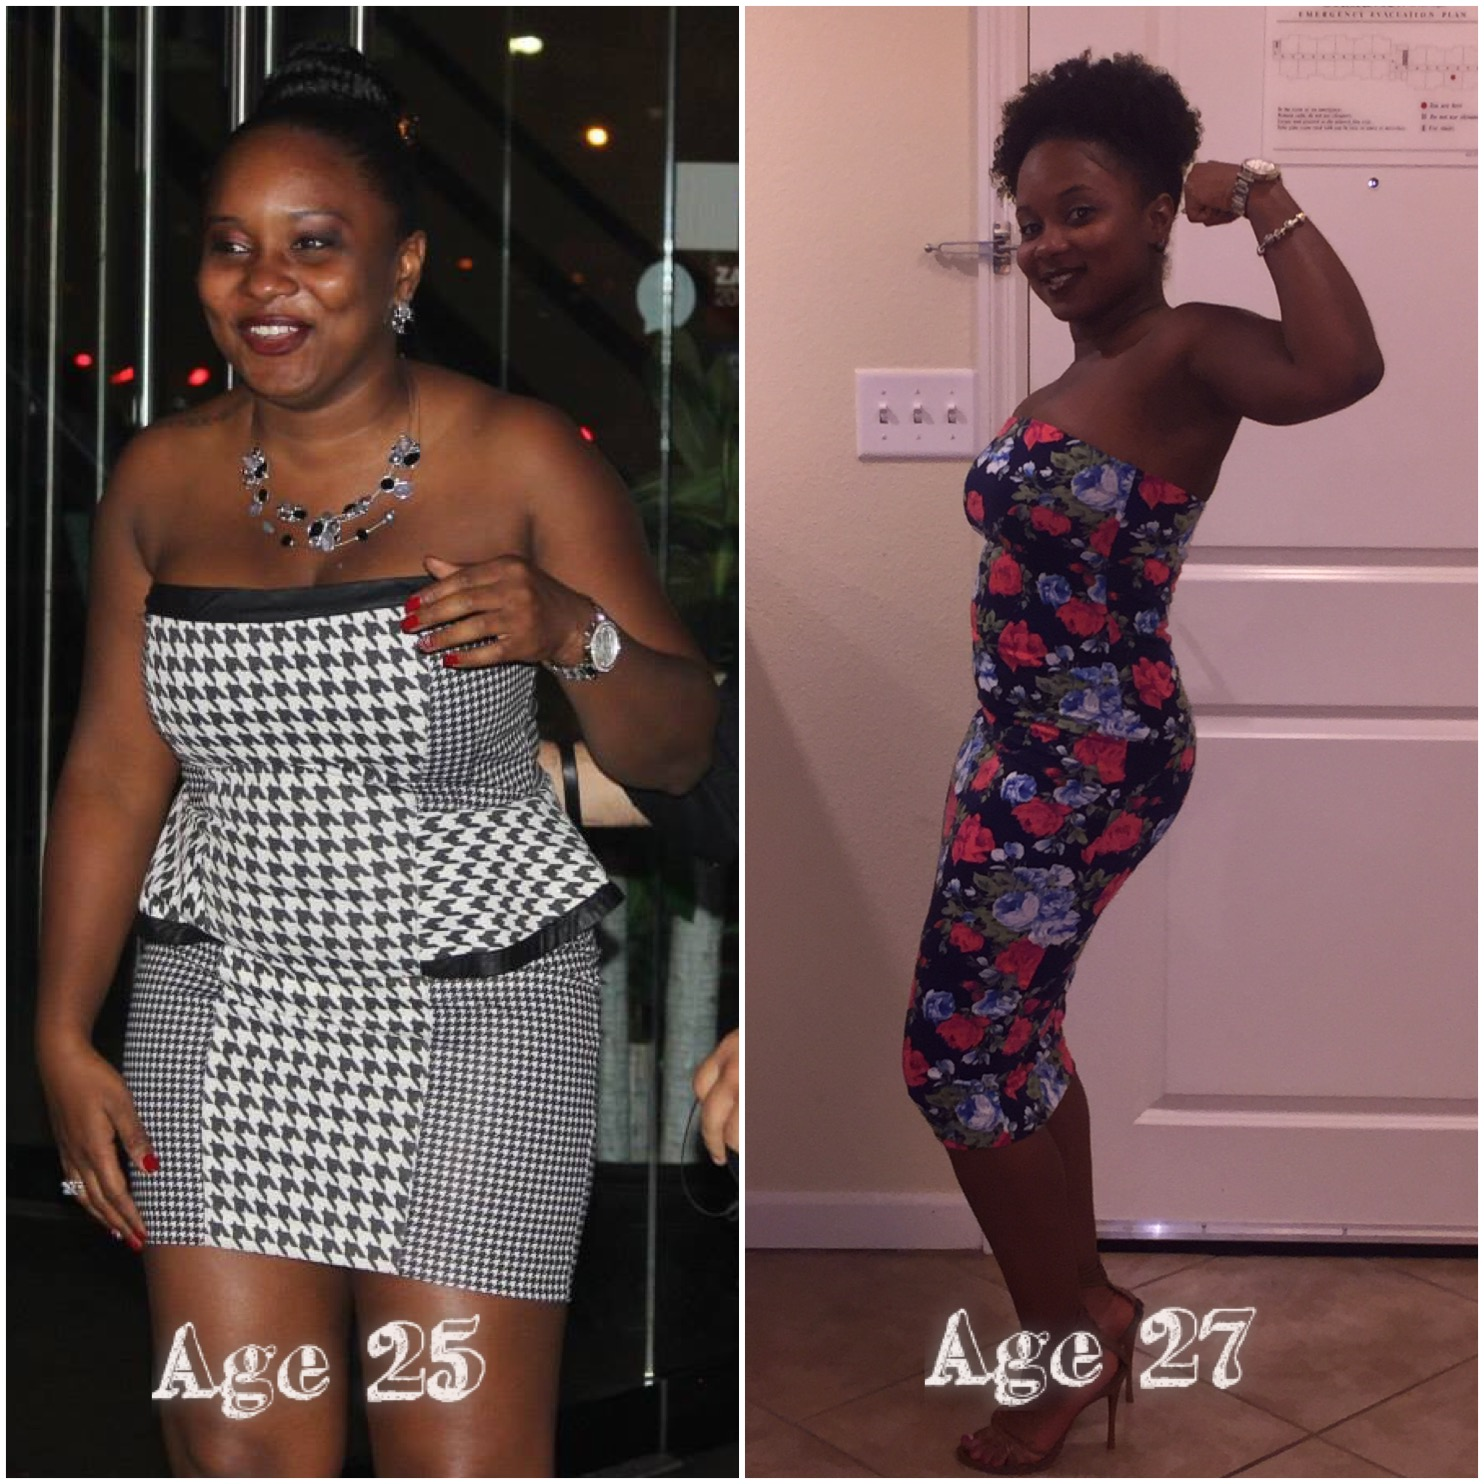 Great success story! Read before and after fitness transformation stories from women and men who hit weight loss goals and got THAT BODY with training and meal prep. Find inspiration, motivation, and workout tips | 32 Pounds Lost: From Flab to Fab